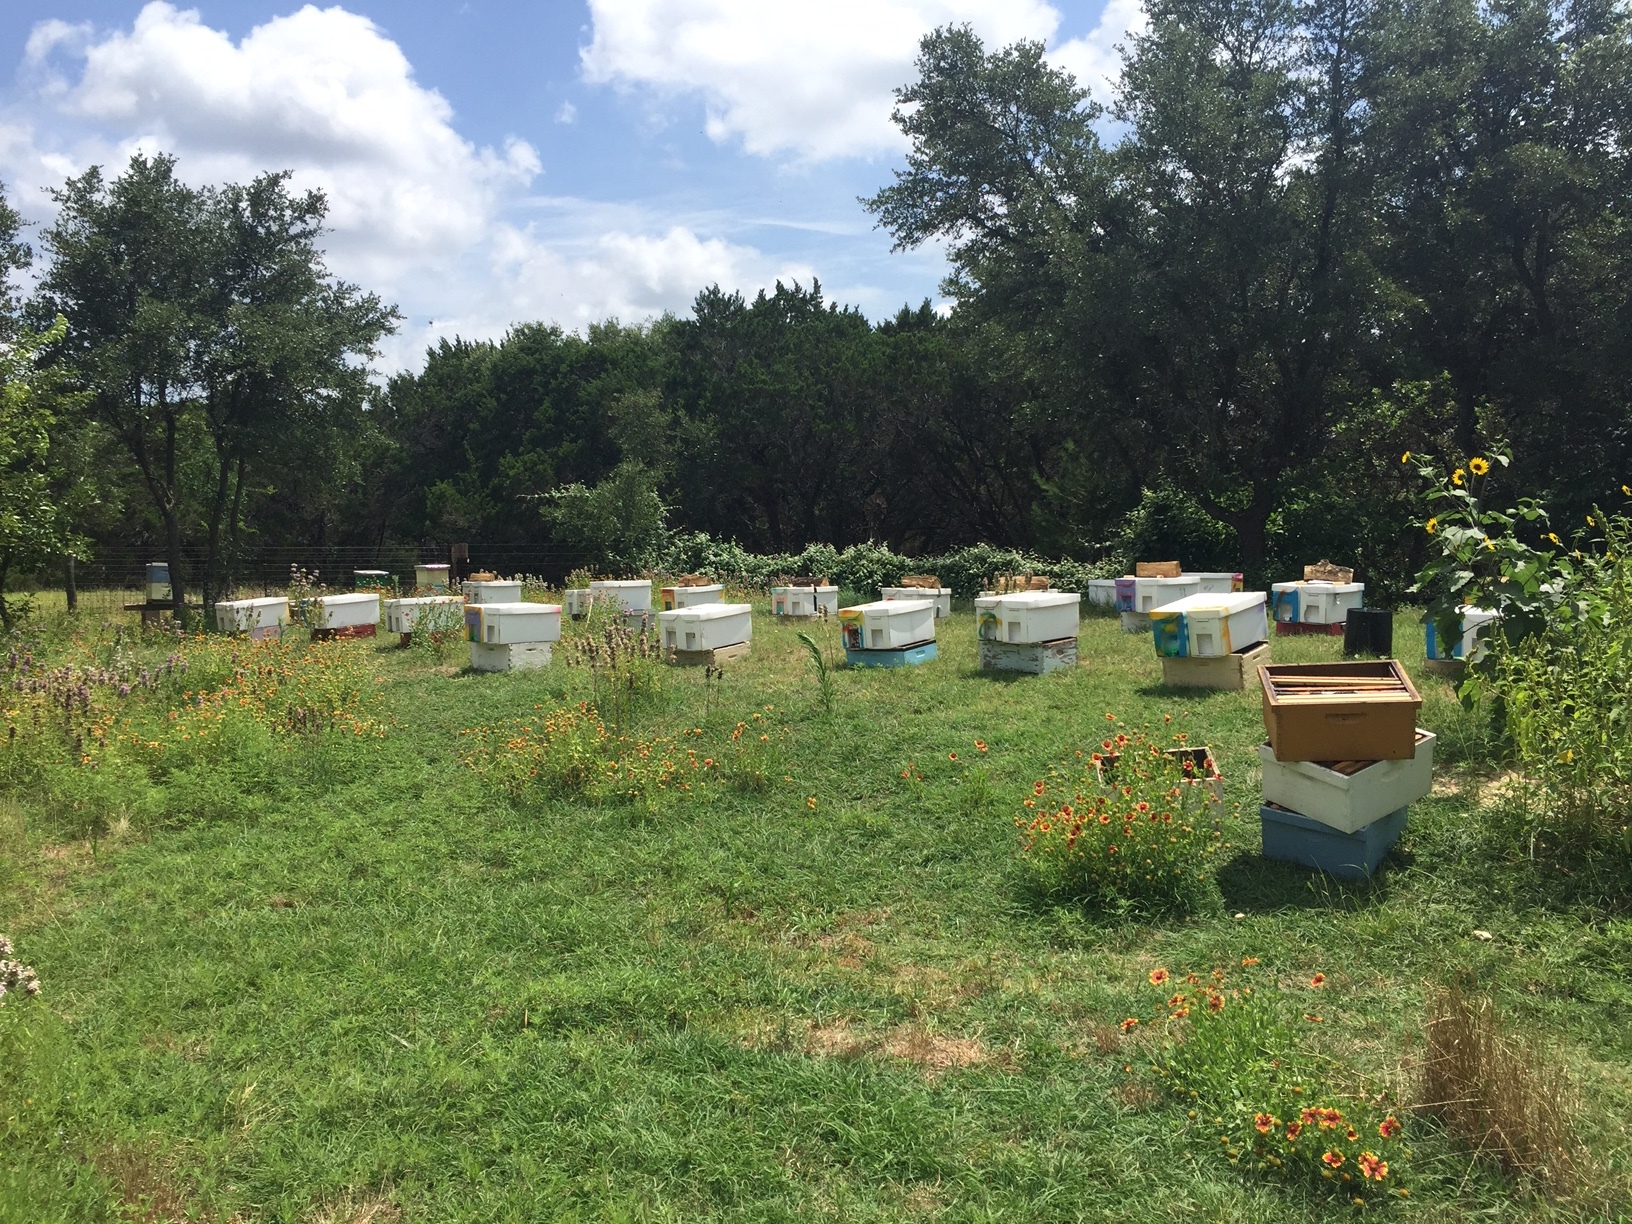 Just a few of the 150 hives living at Texas Bee Honey Farm